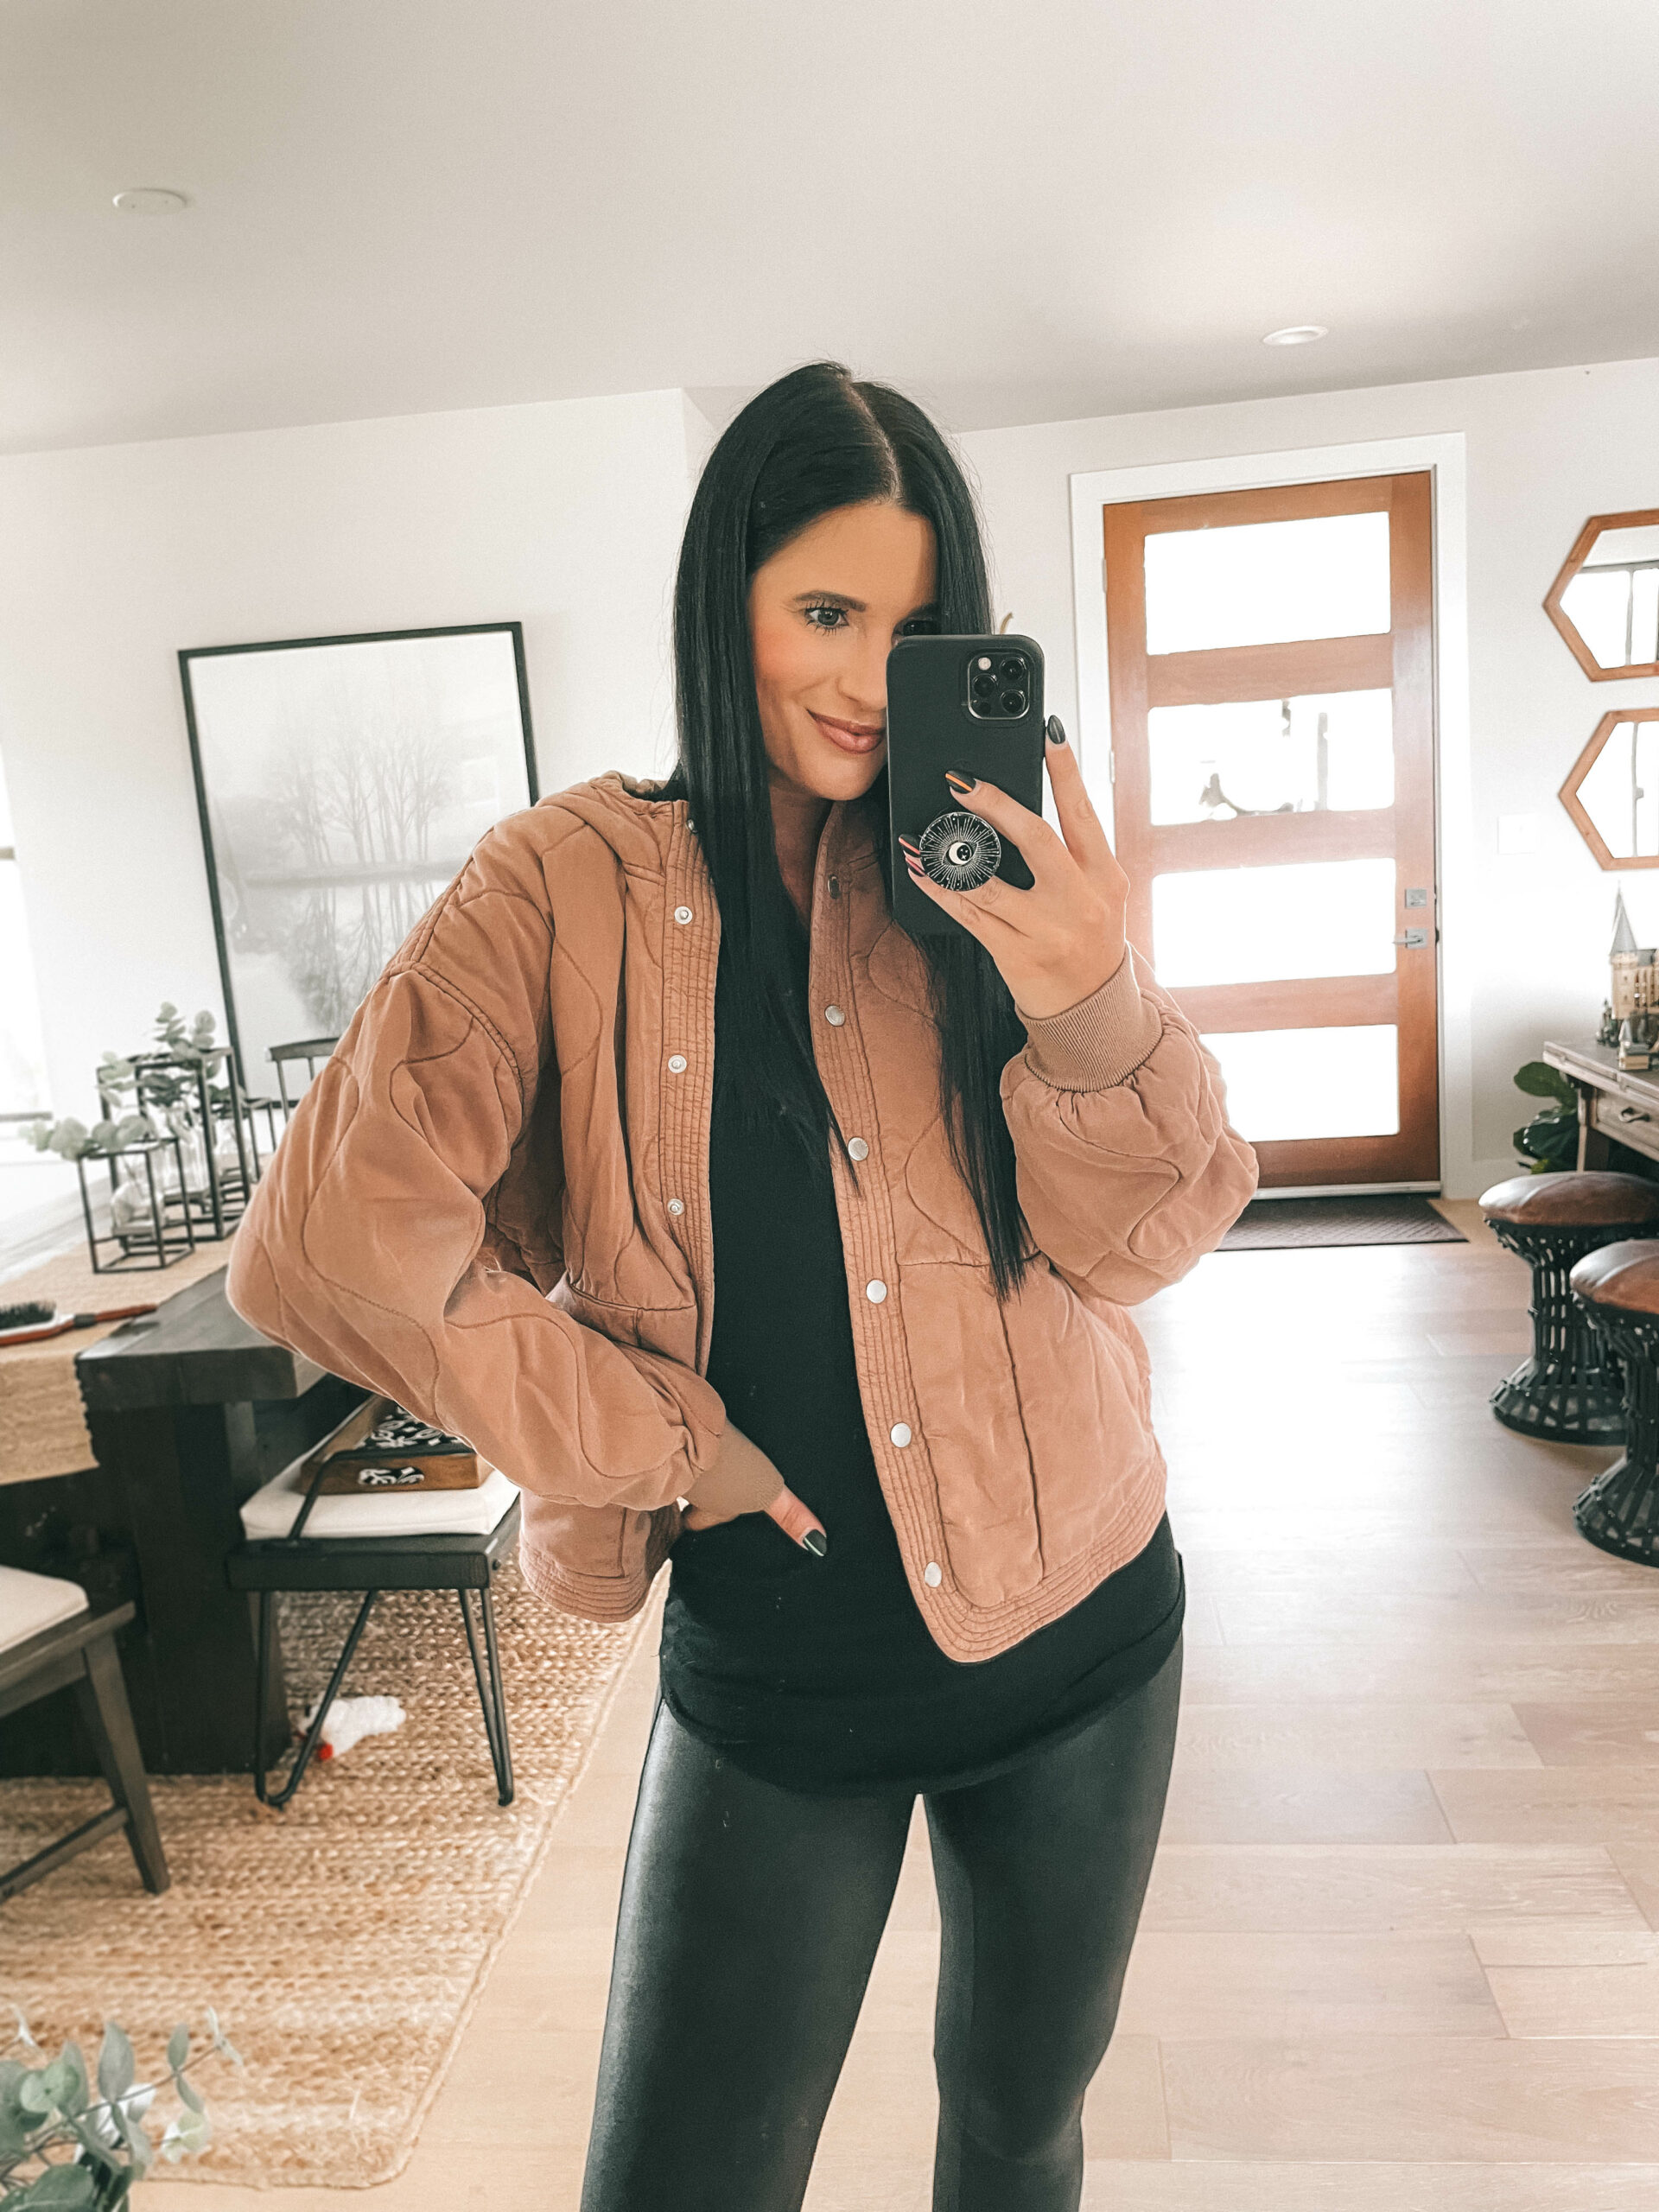 Nordstrom Anniversary Sale by popular Austin fashion blog, Dressed to Kill: image of a woman wearing a brown quilted jacket, black top, and black faux leather leggings.